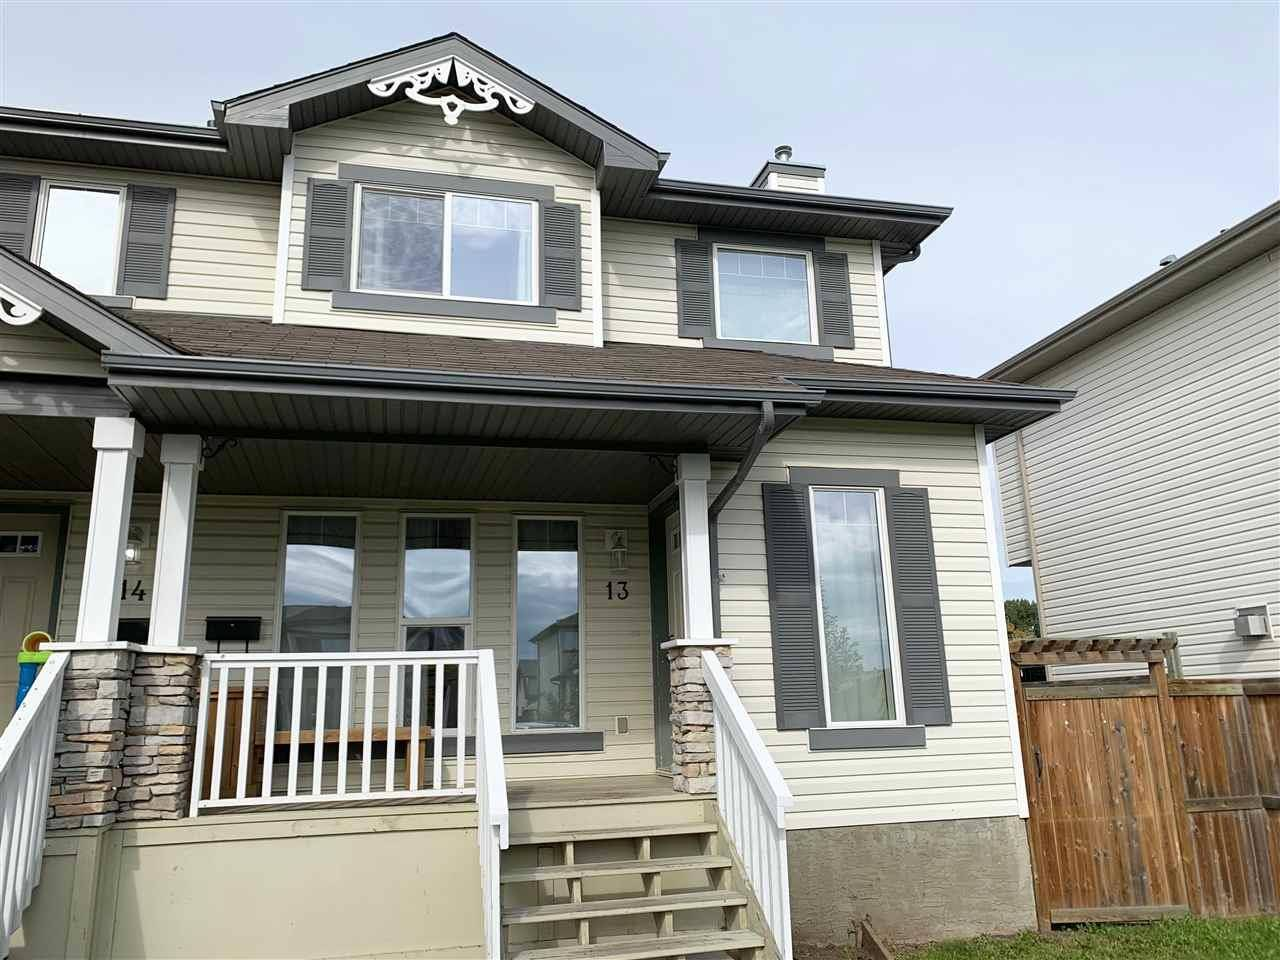 Townhouse for sale at 13 Southwick Pt Leduc Alberta - MLS: E4184963